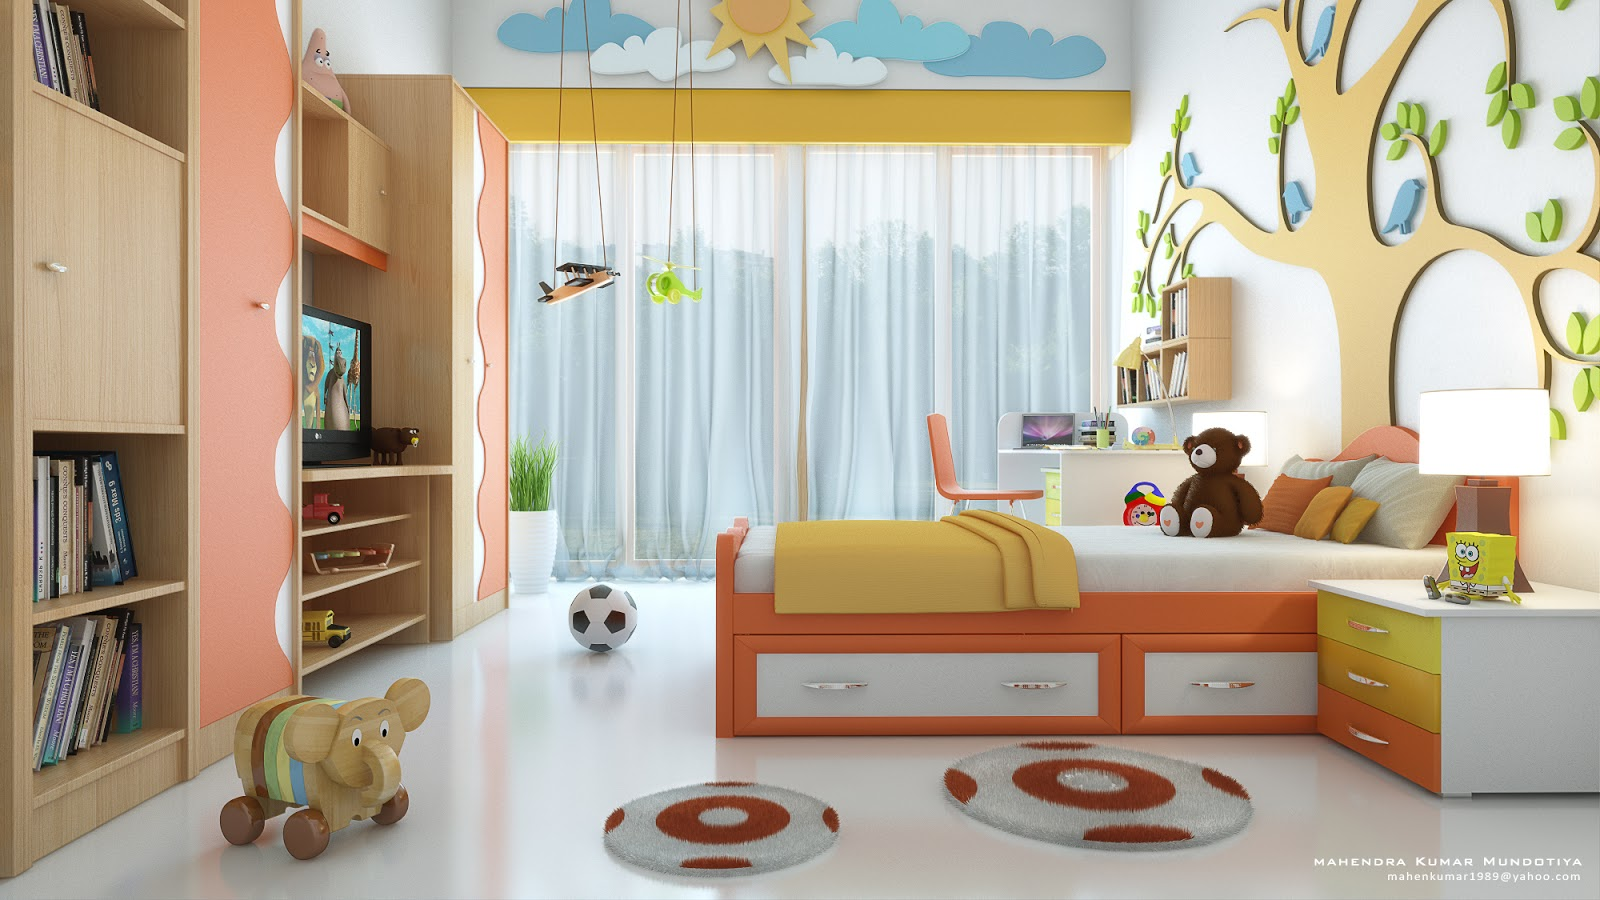 Pics Of Kids Rooms Mahen Thinks Kid 39s Room